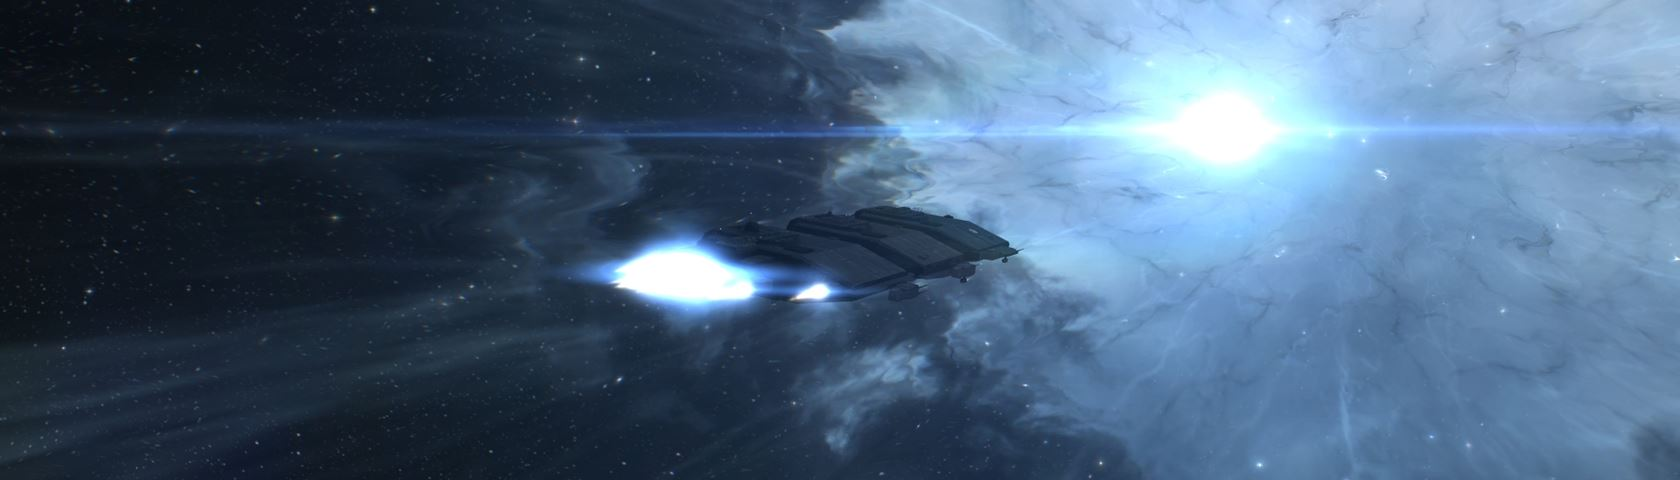 Eve Online Charon • Images • WallpaperFusion by Binary Fortress Software